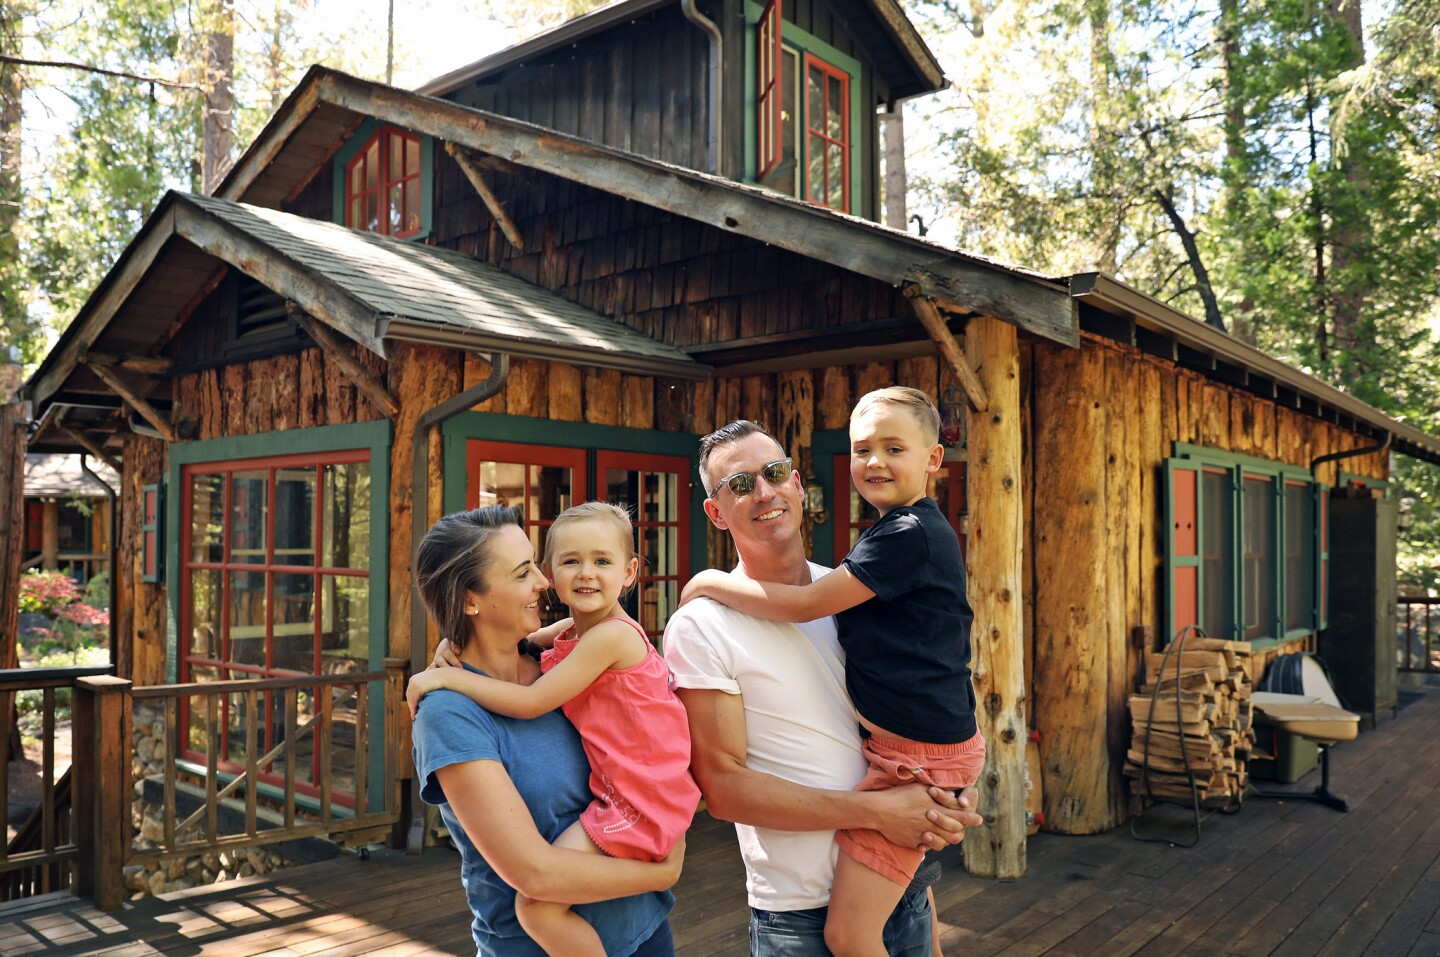 The Donovan family left Silver Lake for Idyllwild after visiting a for-sale home on a lark. The property's two structures date to the early 1920s. Catherine with Bon, age 4, and Michael with Tate, 7.